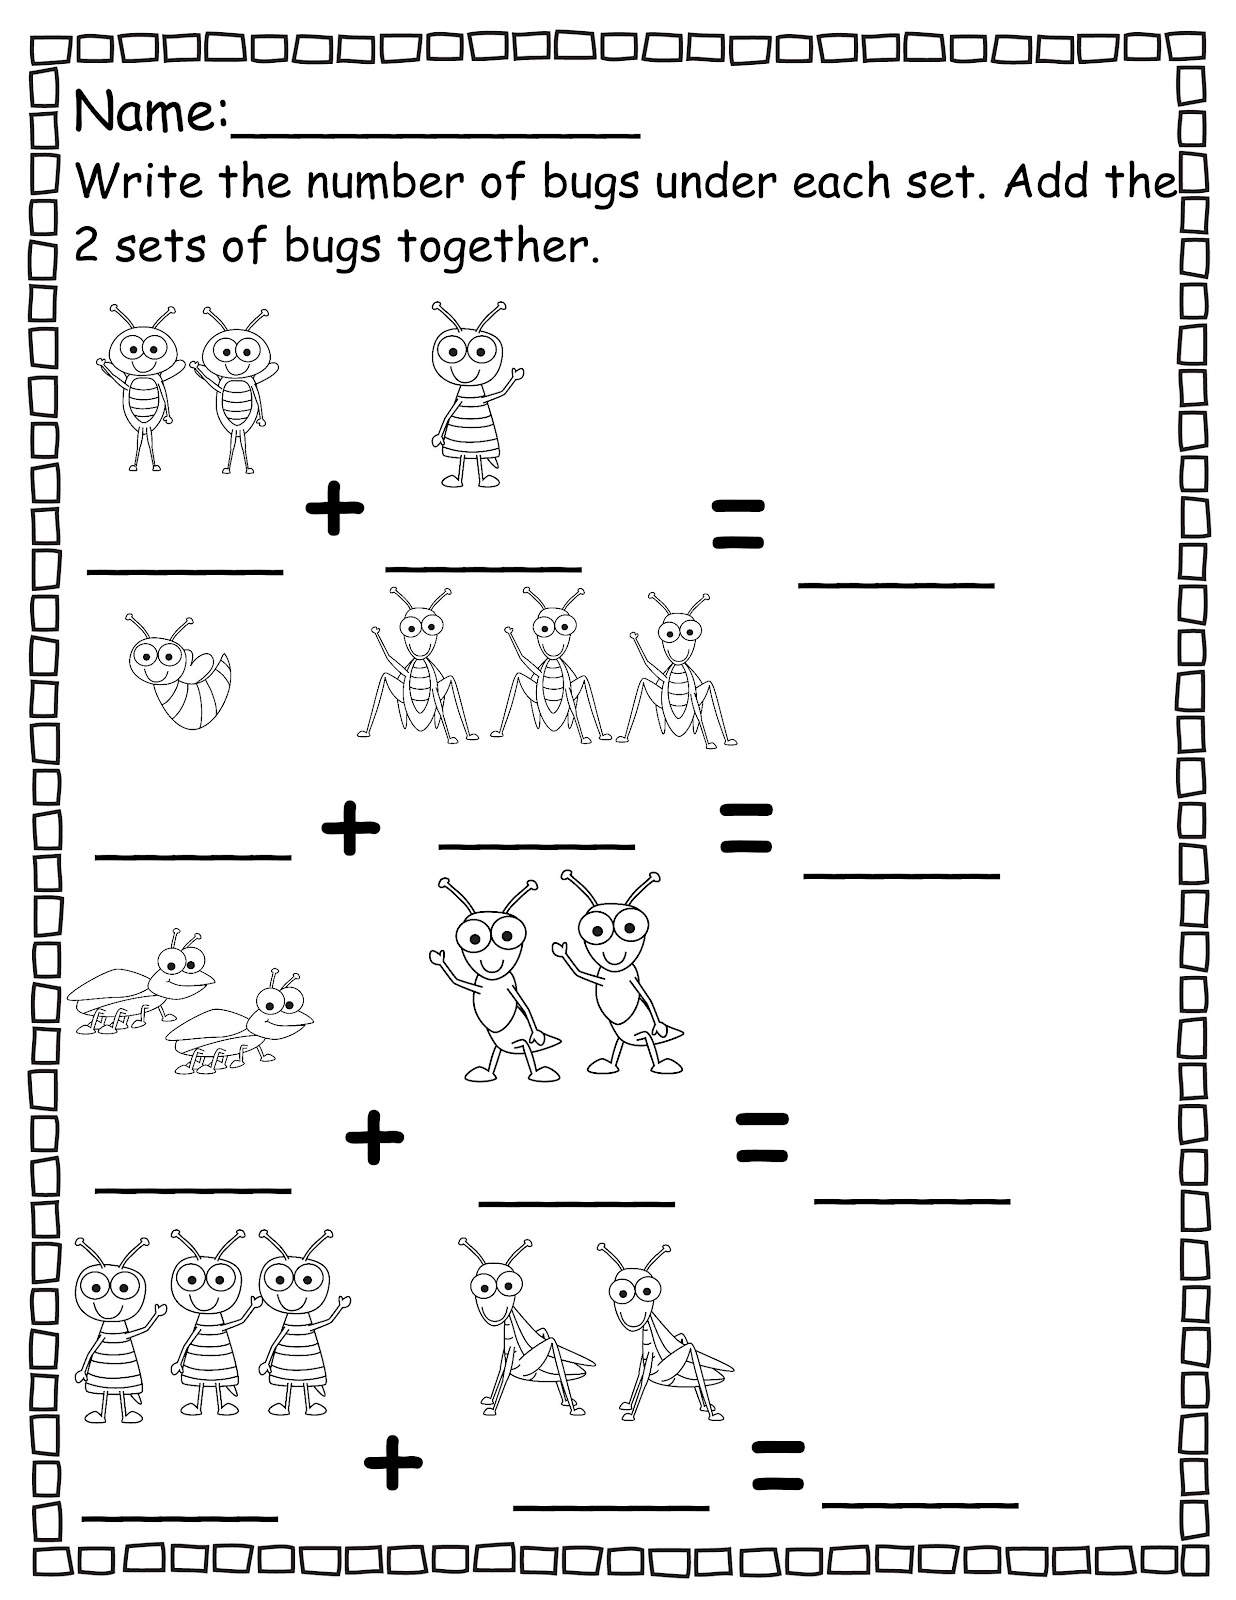 worksheet. Free Printable Pre K Worksheets. Grass Fedjp Worksheet ...